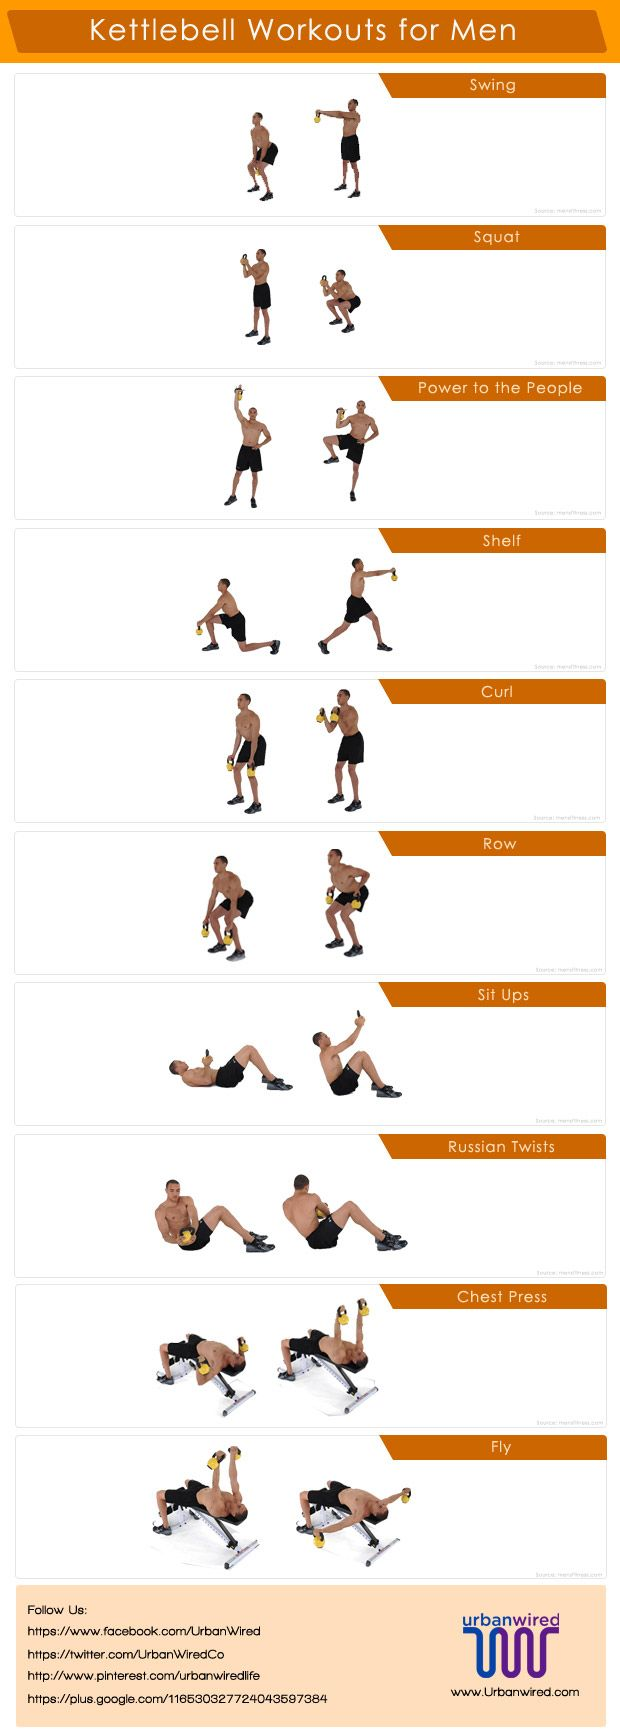 A kettle bell workout will increase your heart rate and work on your core, lower legs and lower back. This is what makes kettlebell workouts for men ideal.